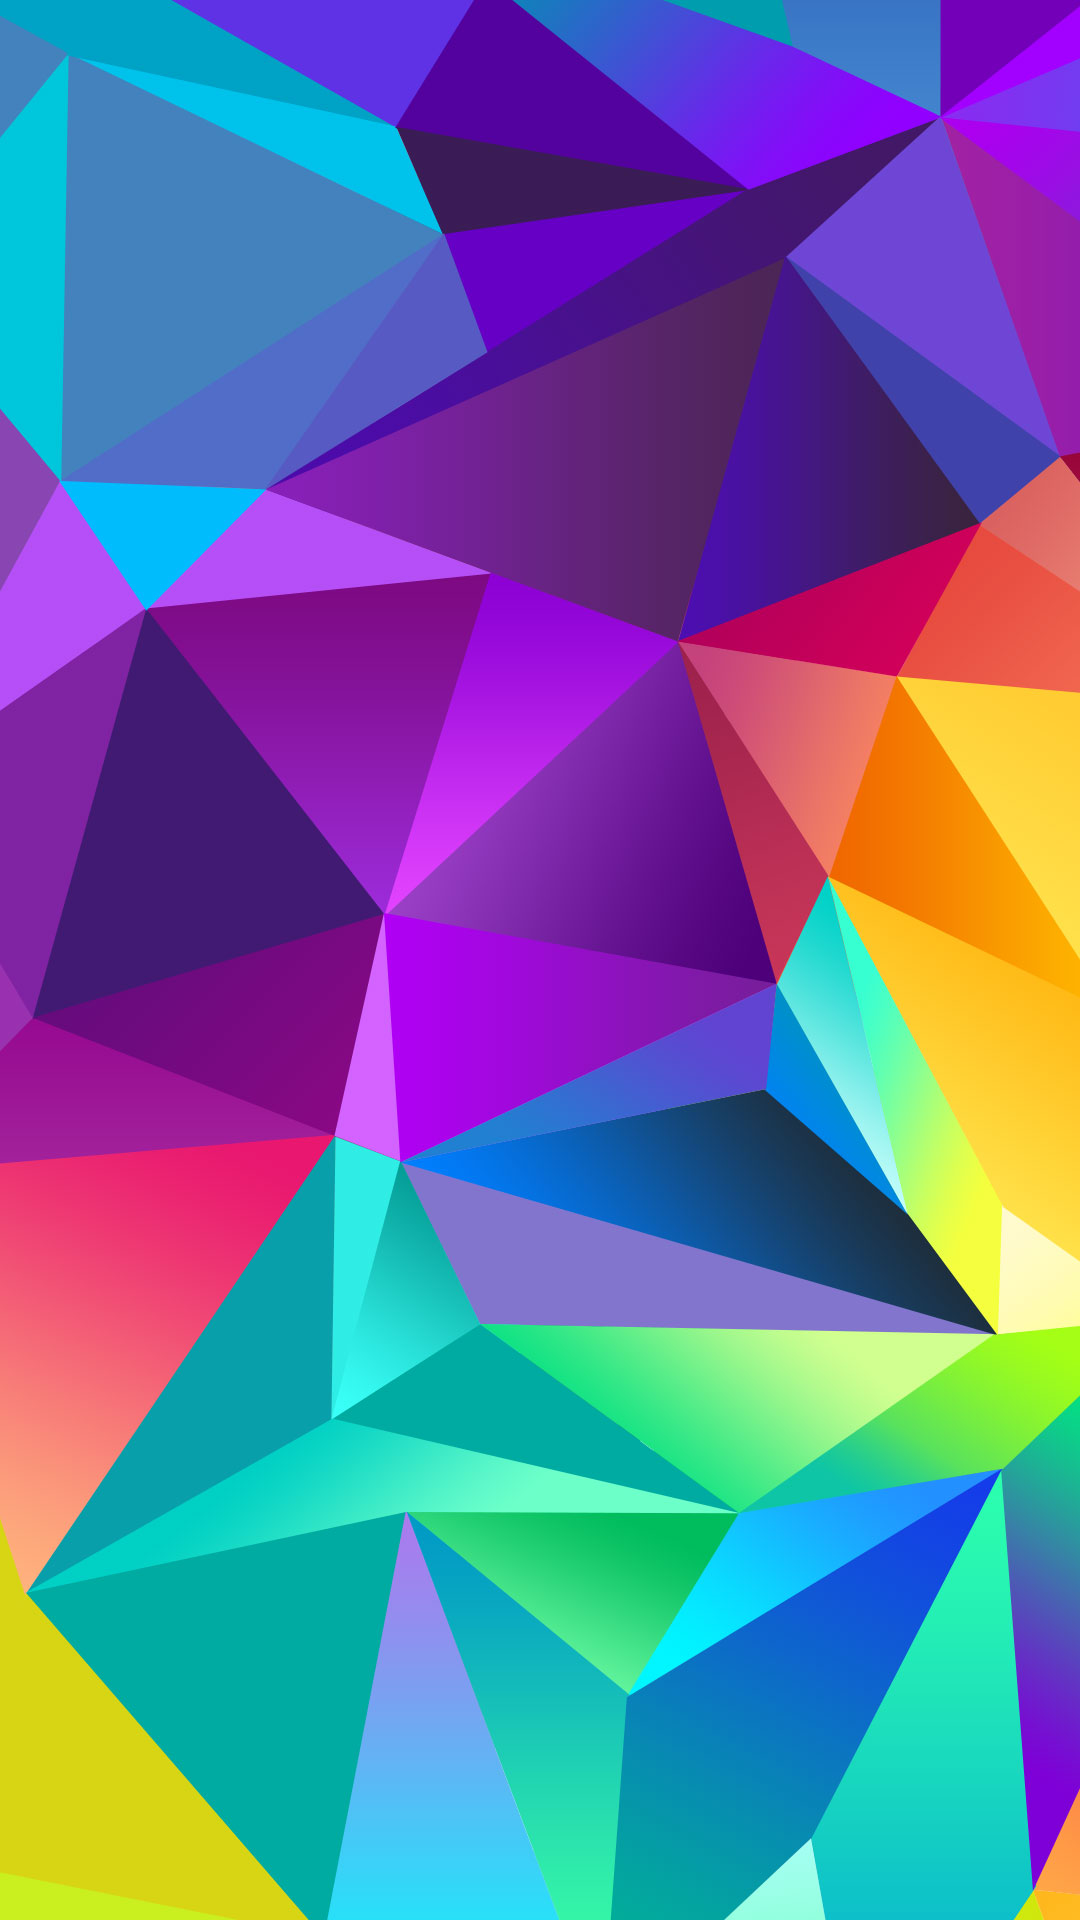 3d Wallpaper Iphone 6 Posted By Michelle Sellers